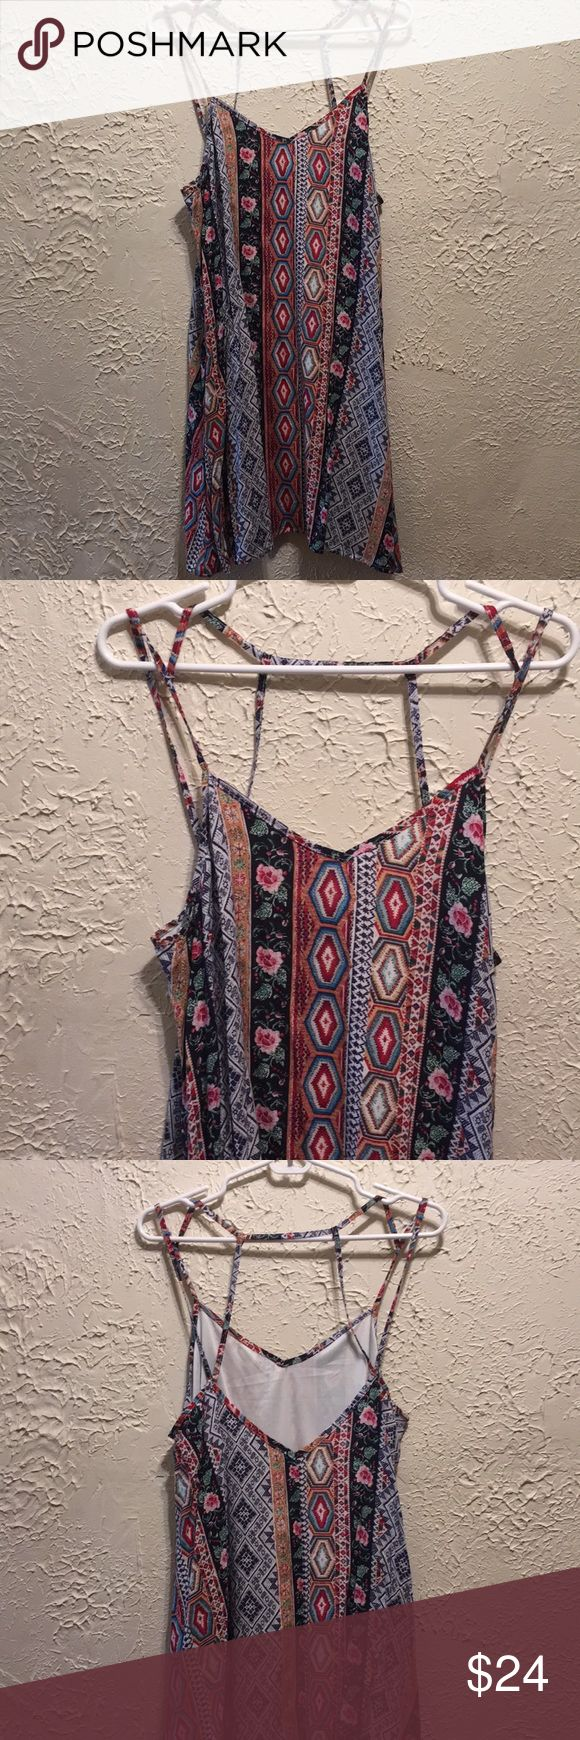 """Low back deep V patterned dress This is a great sundress and going out dress! Length 35"""" Dresses Midi"""